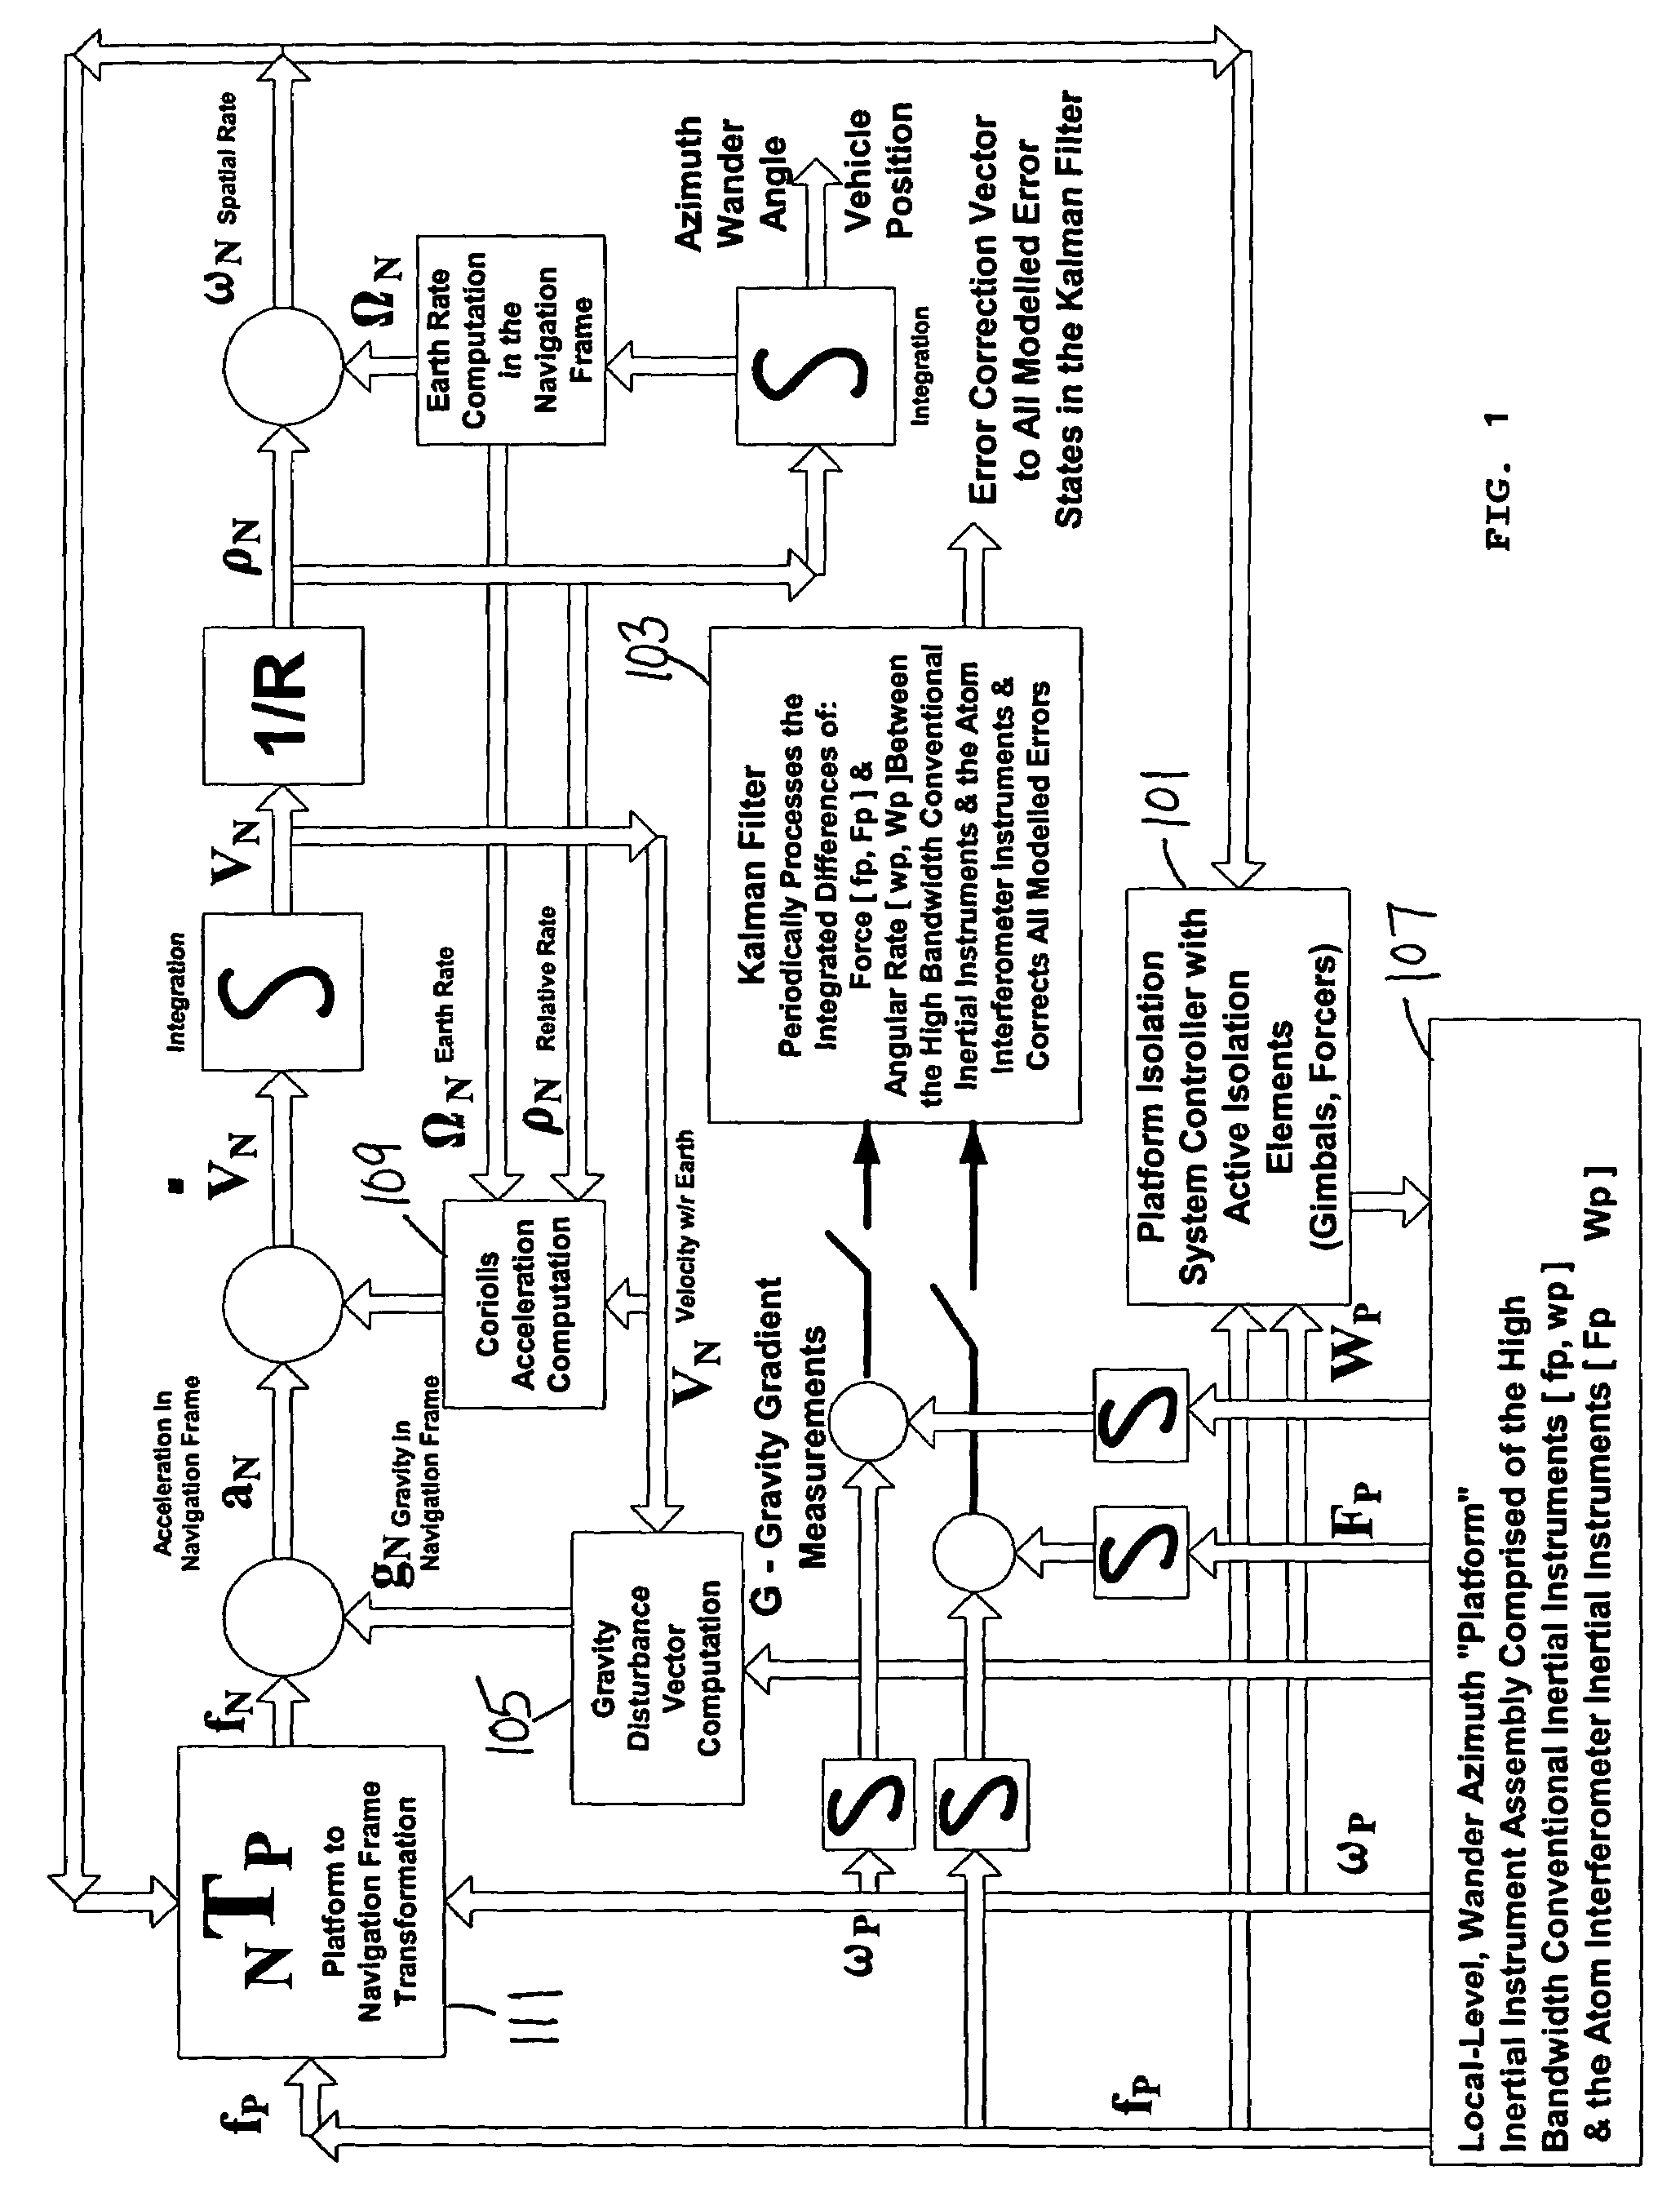 Patent Us7142983 Method For The Processing Of Non Continuous